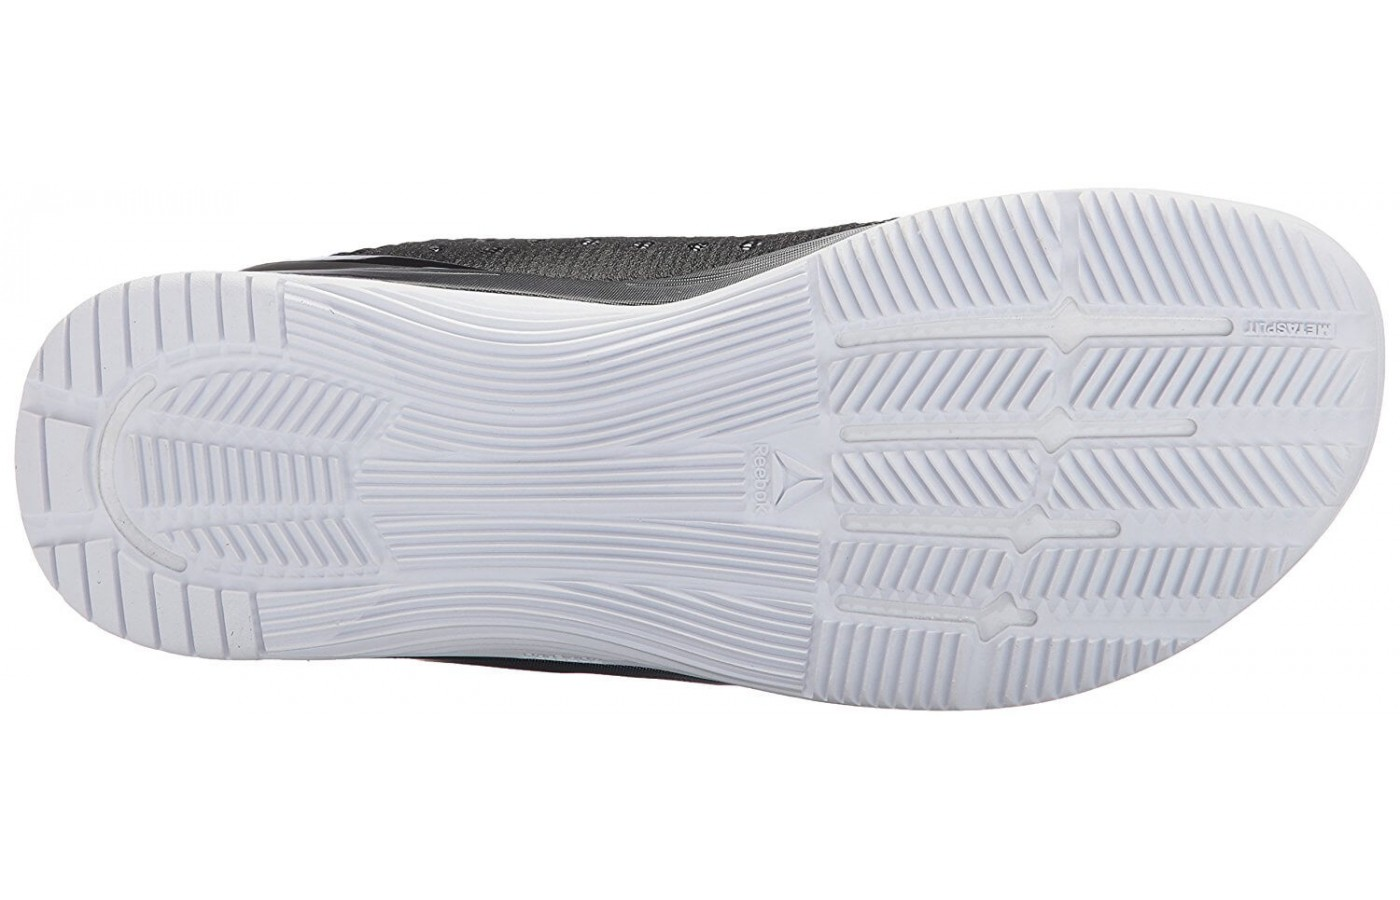 The outsole of the Reebok Crossfit Nano 7 Weave was designed to provide traction and protection indoors.